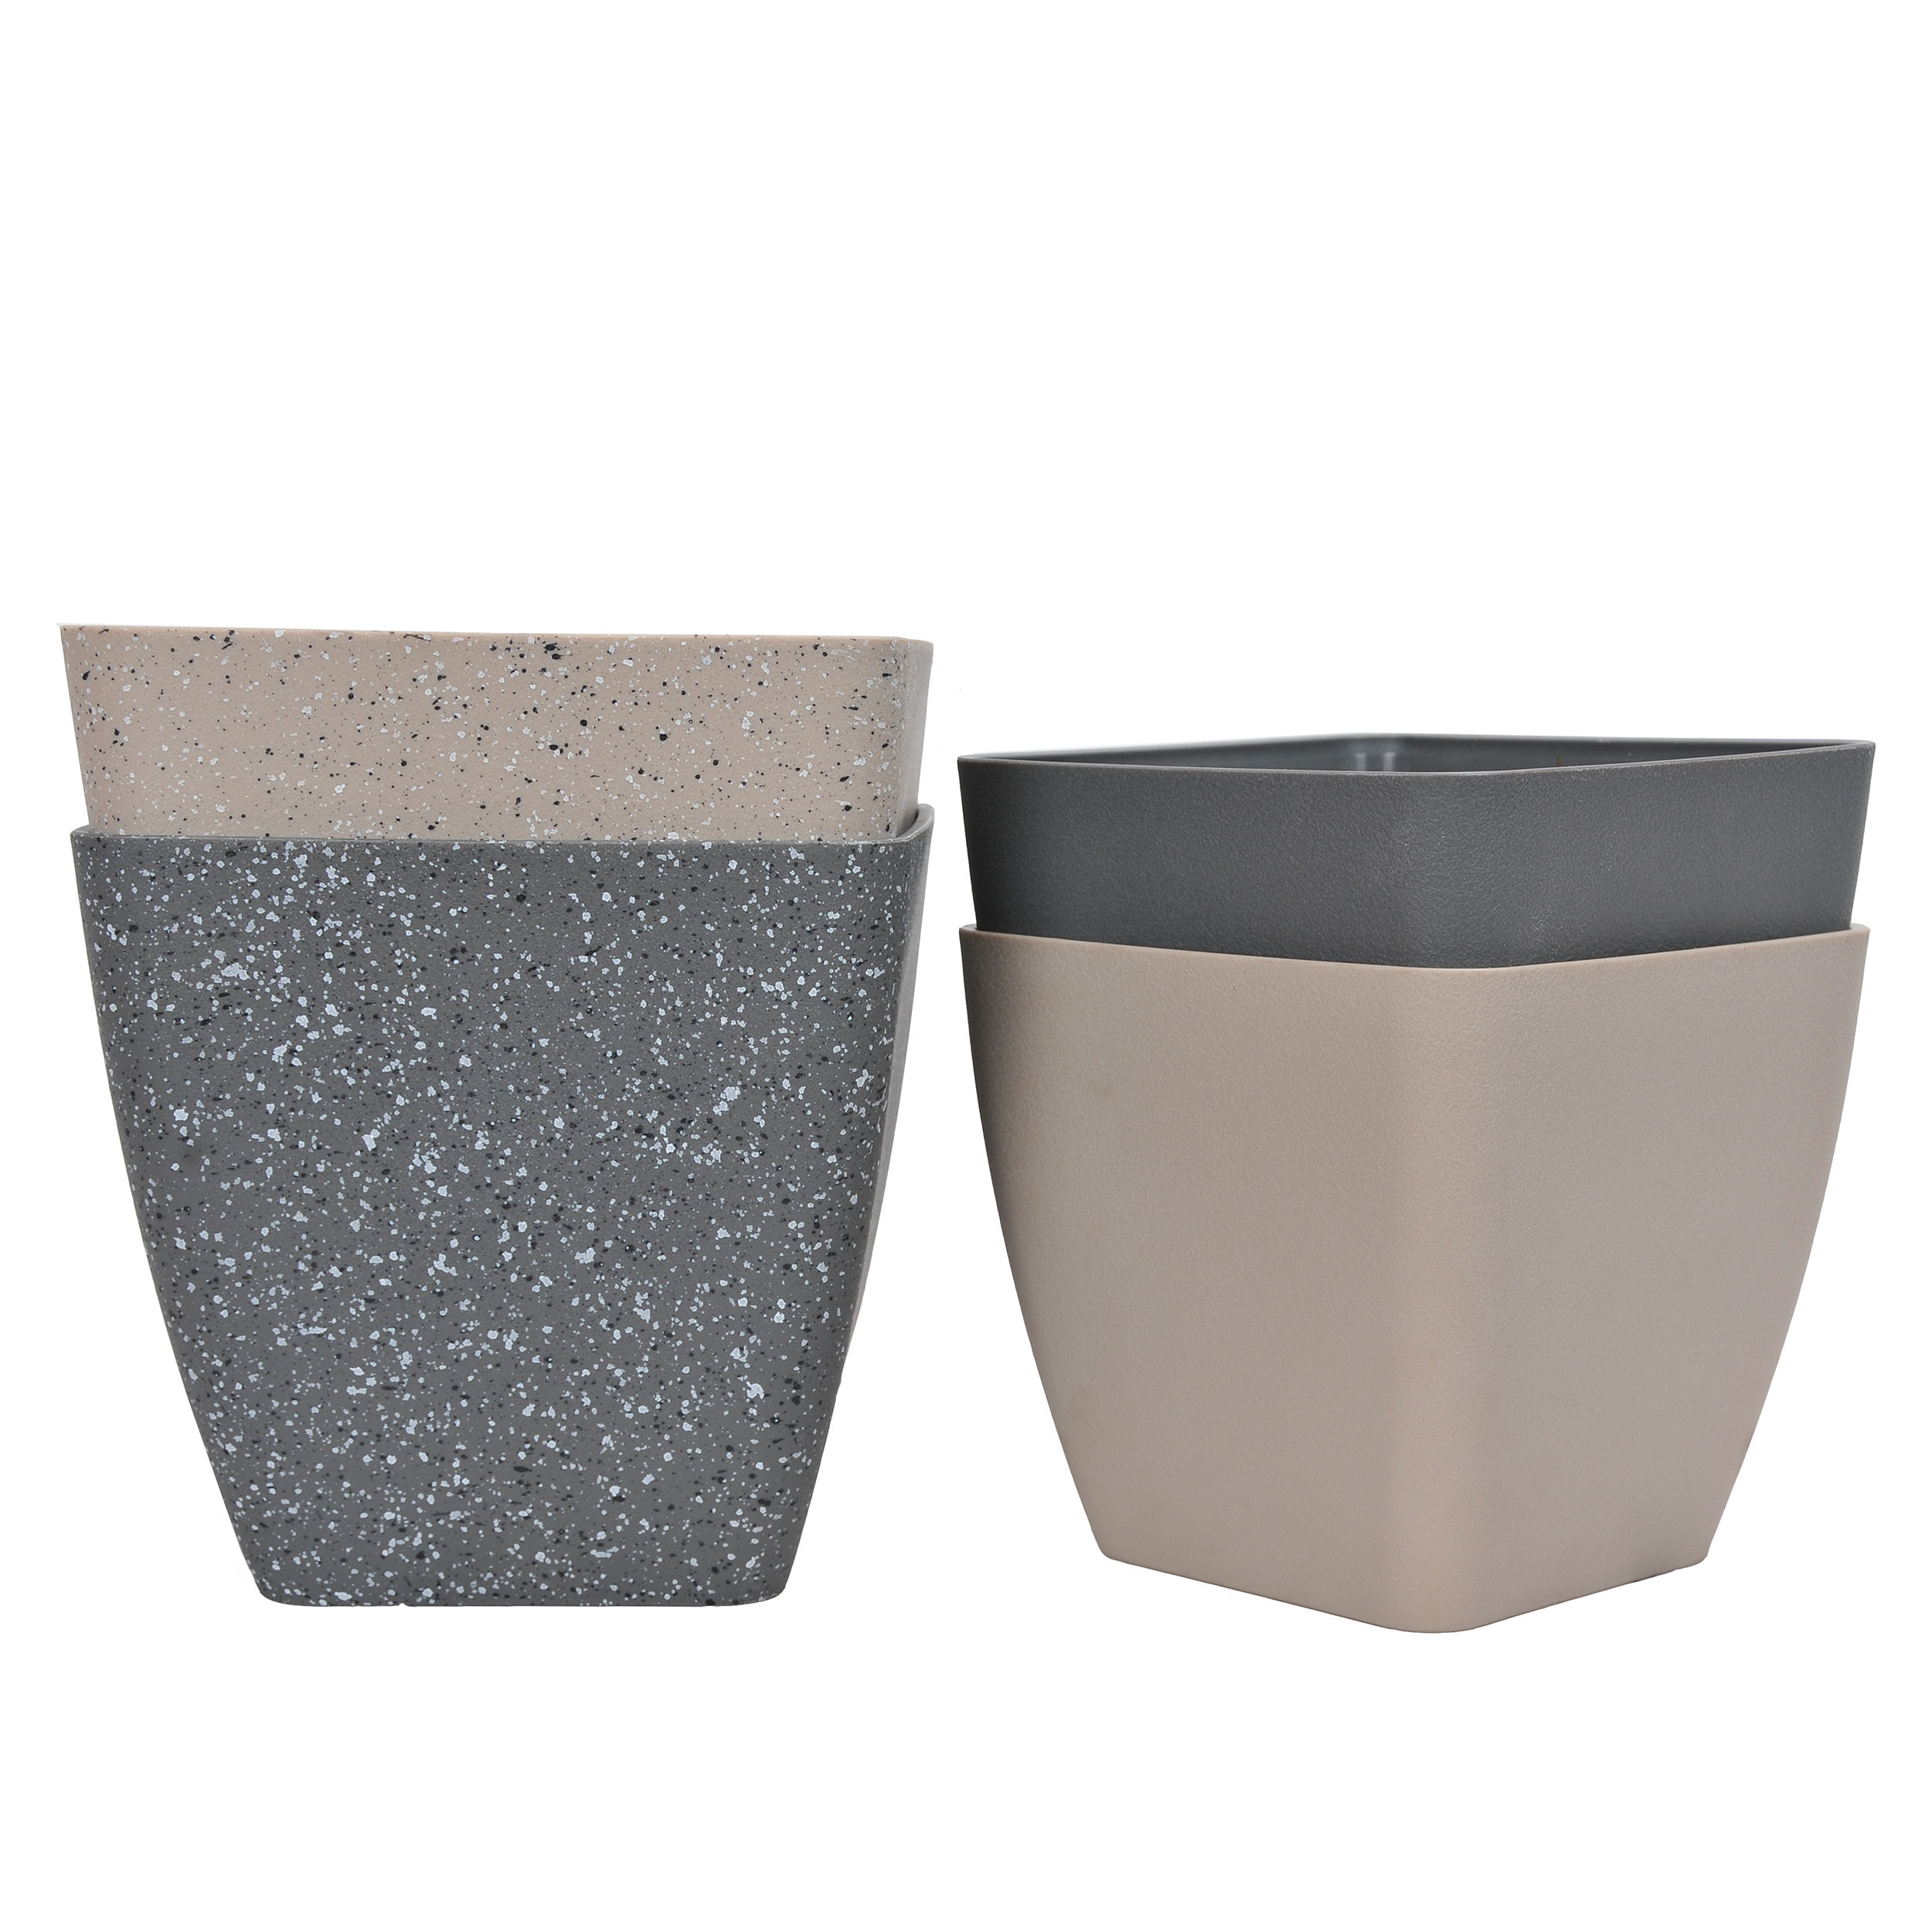 indoor gardening plastic pots for plants garden supplies home decoration and garden flower pots